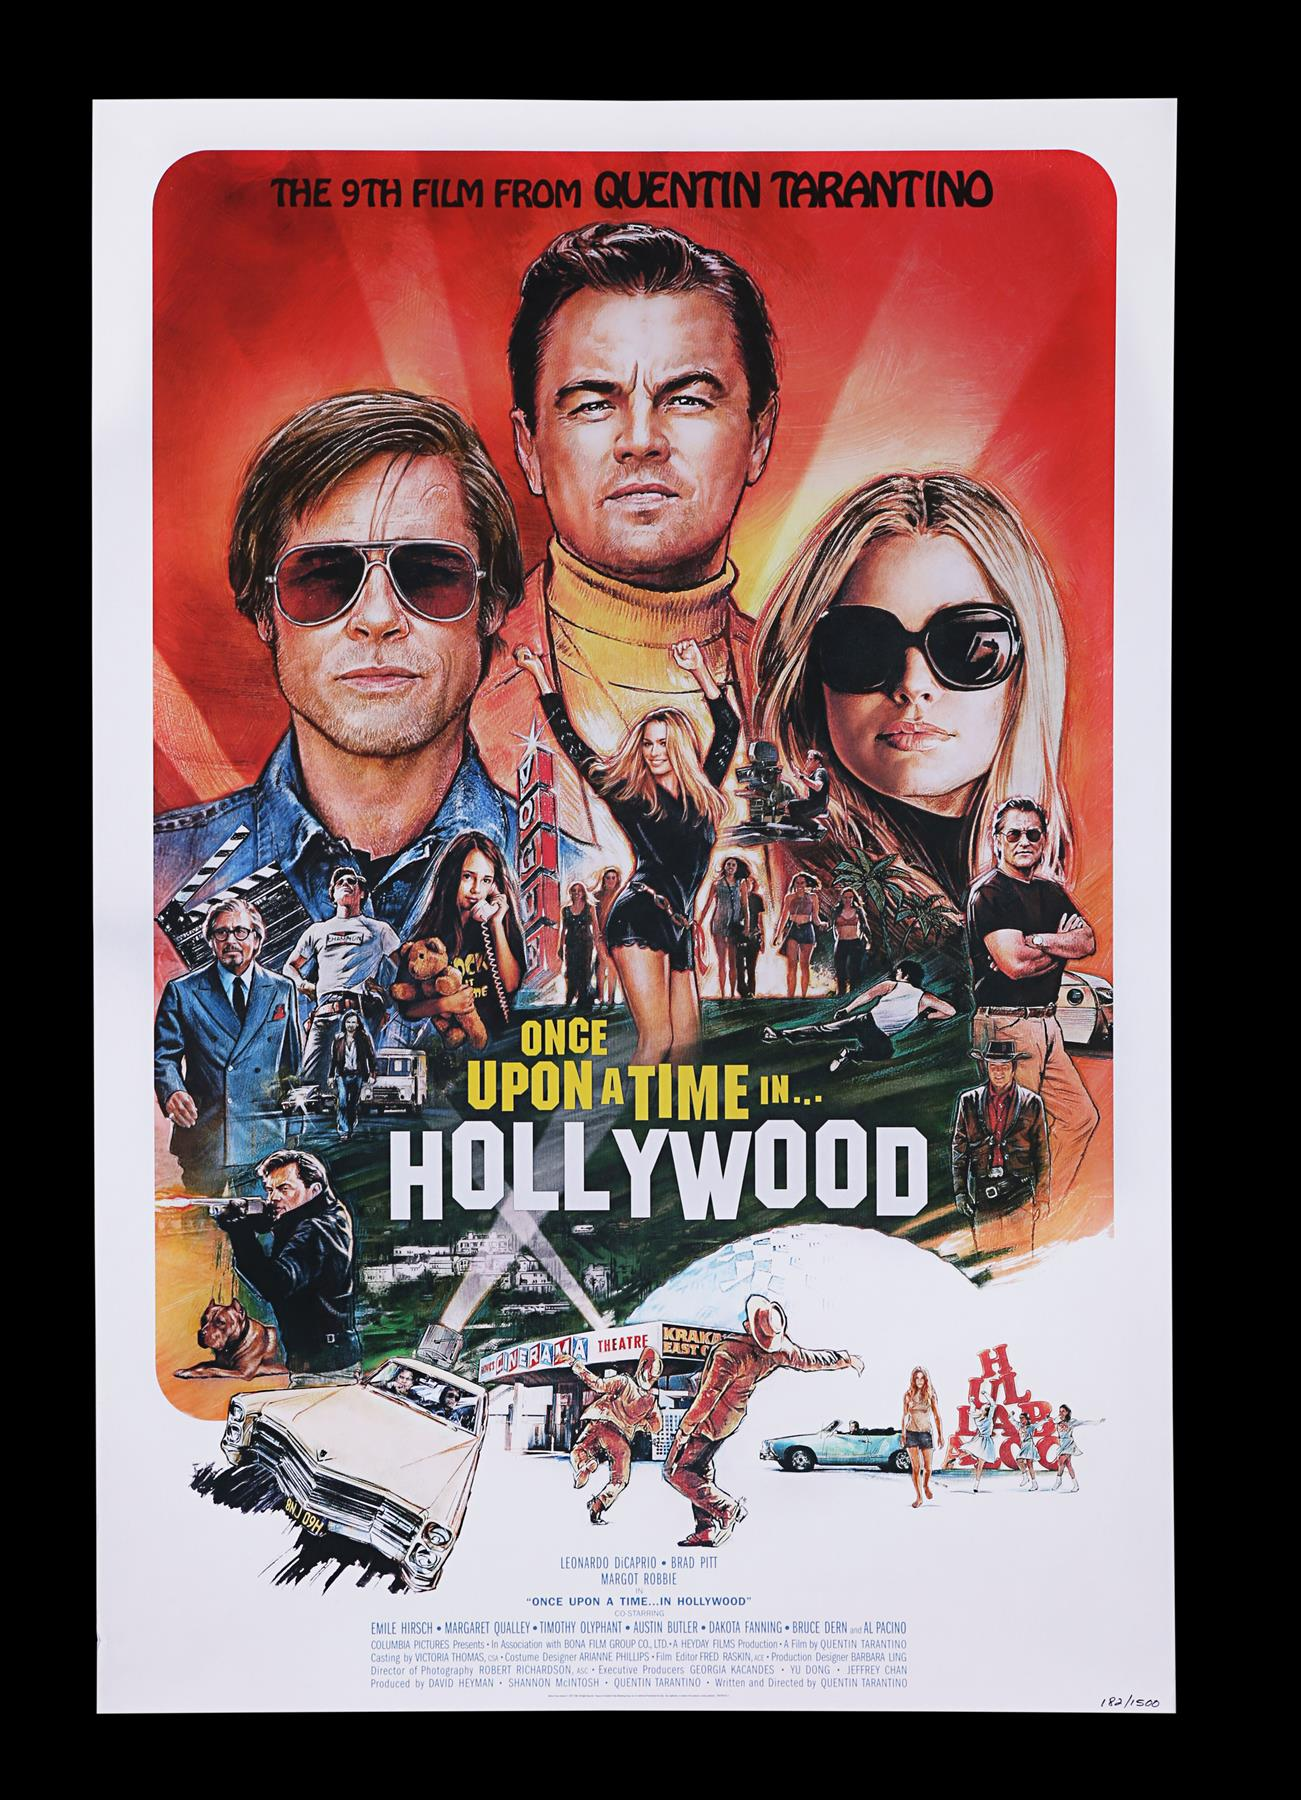 ONCE UPON A TIME IN HOLLYWOOD (2019) - Limited Edition Numbered Soundtrack Album and Posters, 2019 - Image 2 of 8